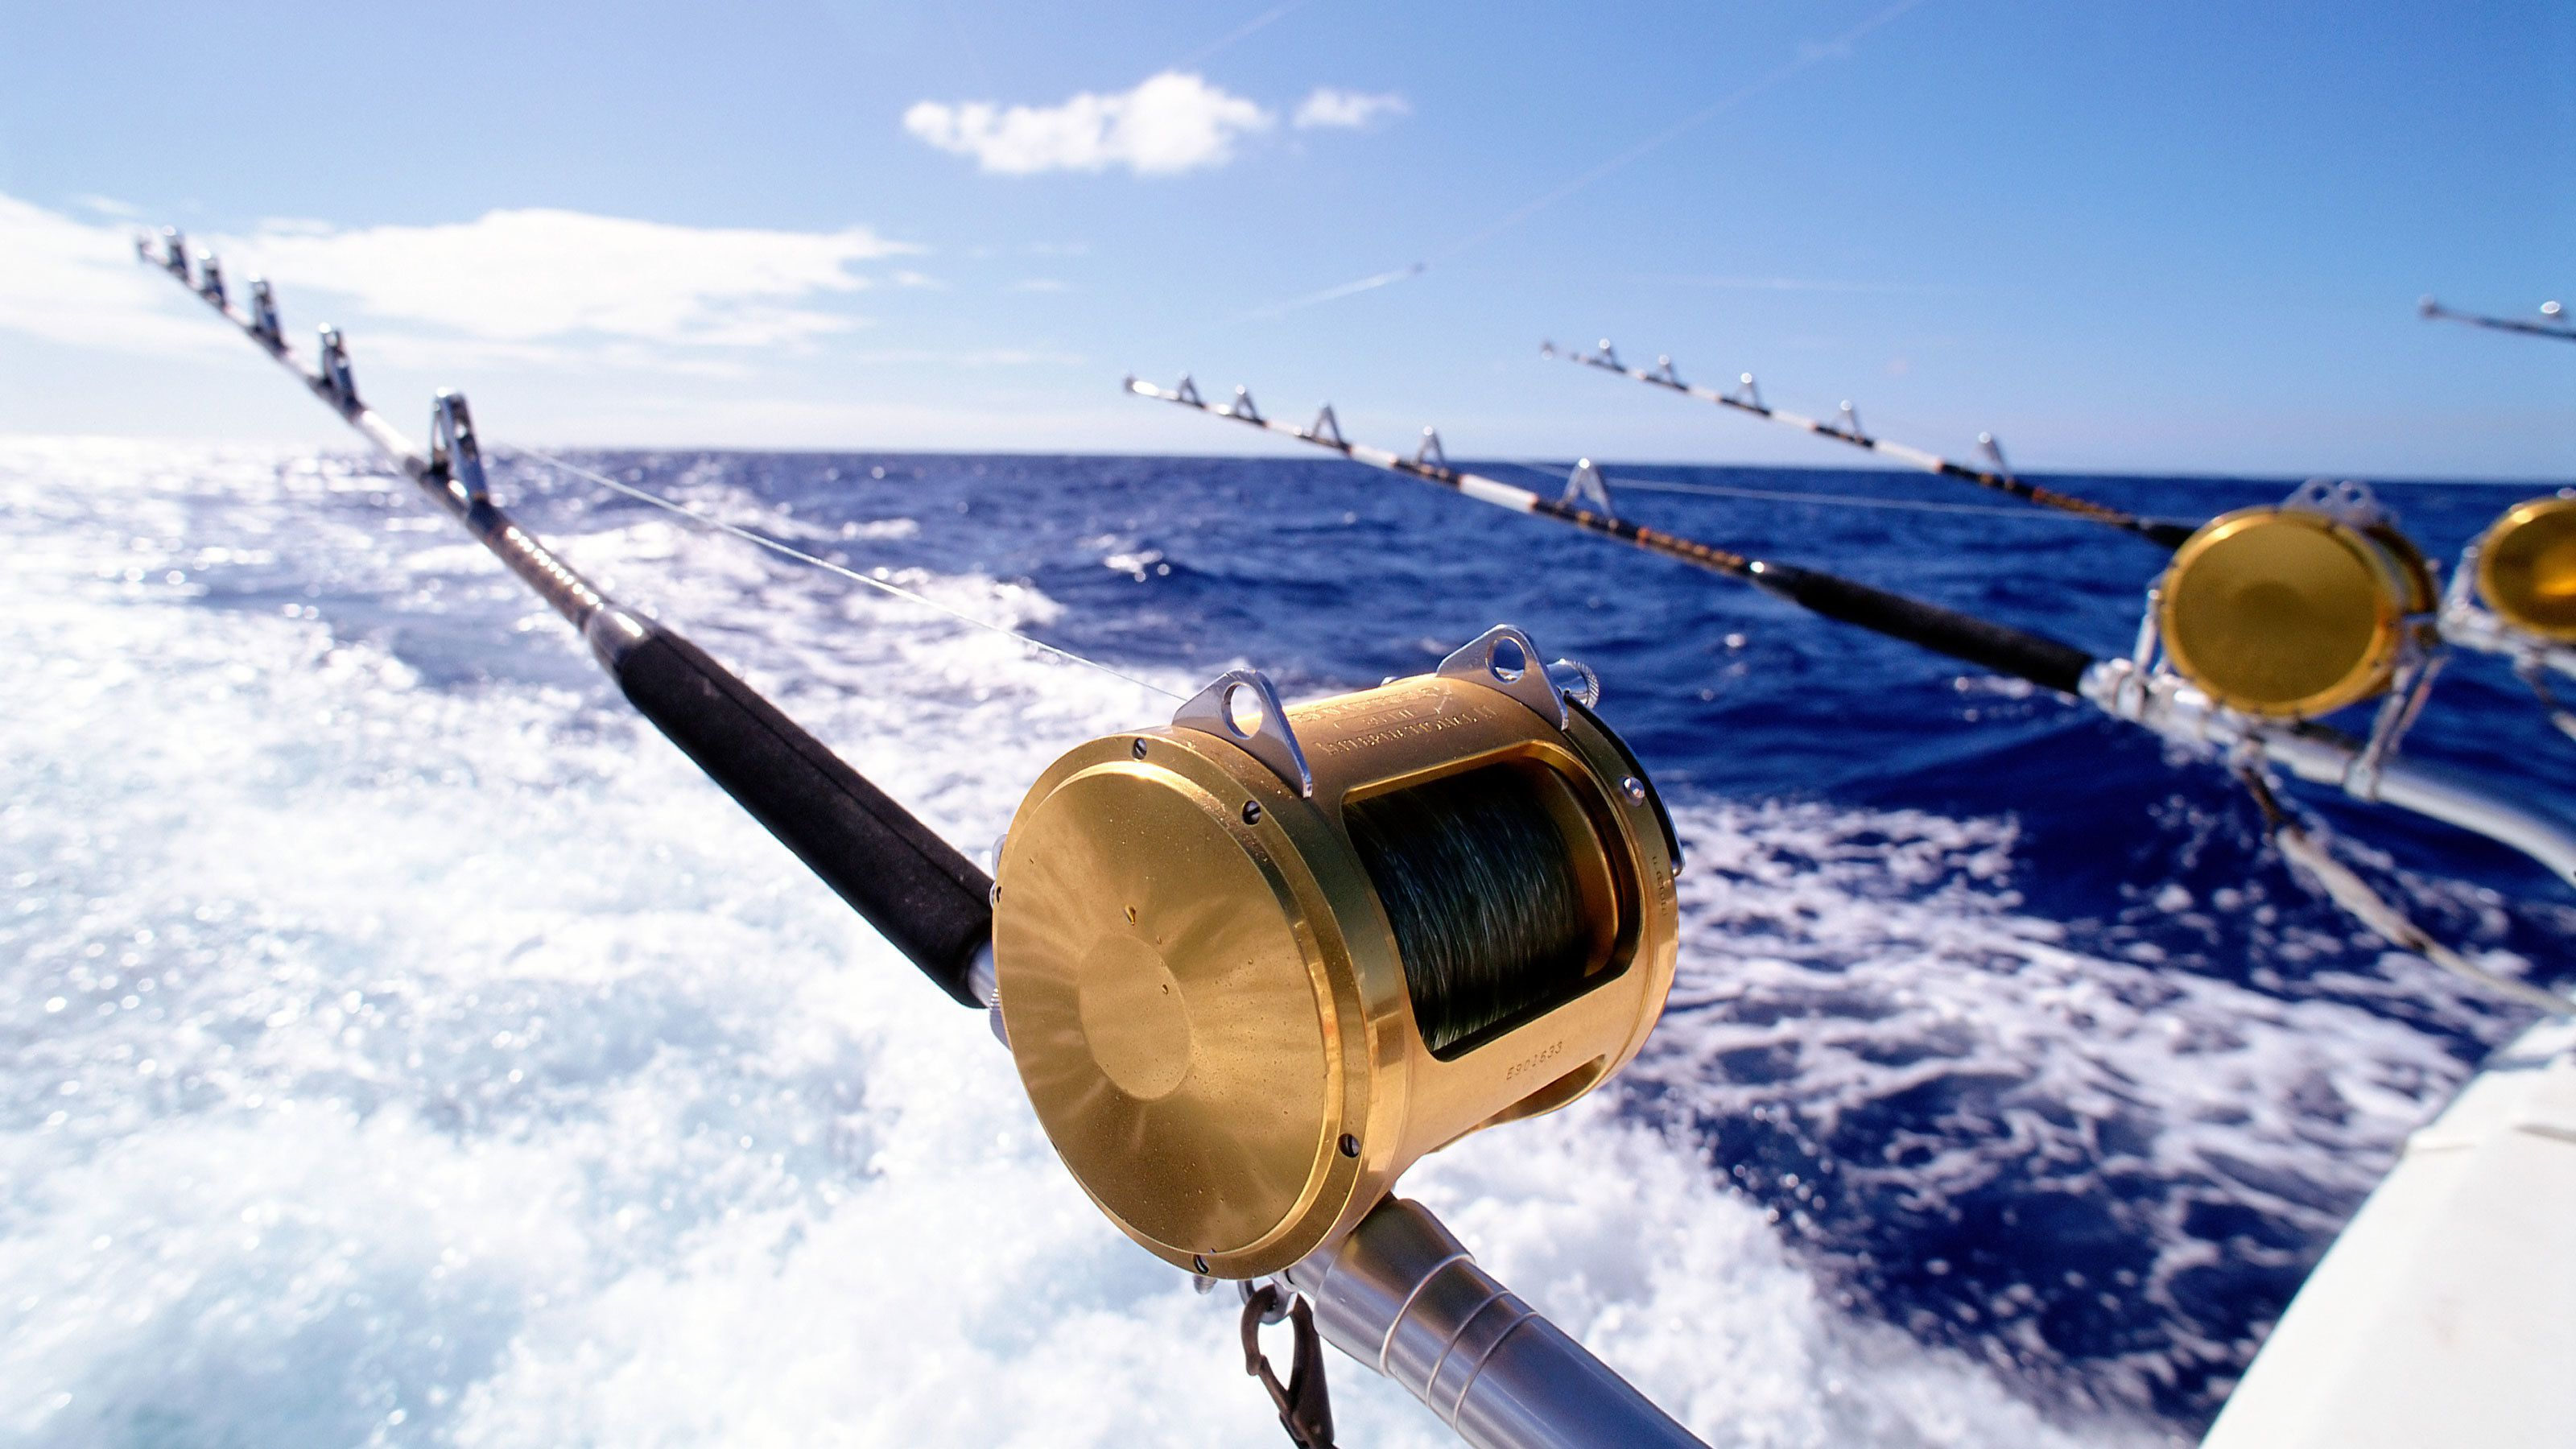 Fishing poles are cast out to sea in hope to reel in a catch